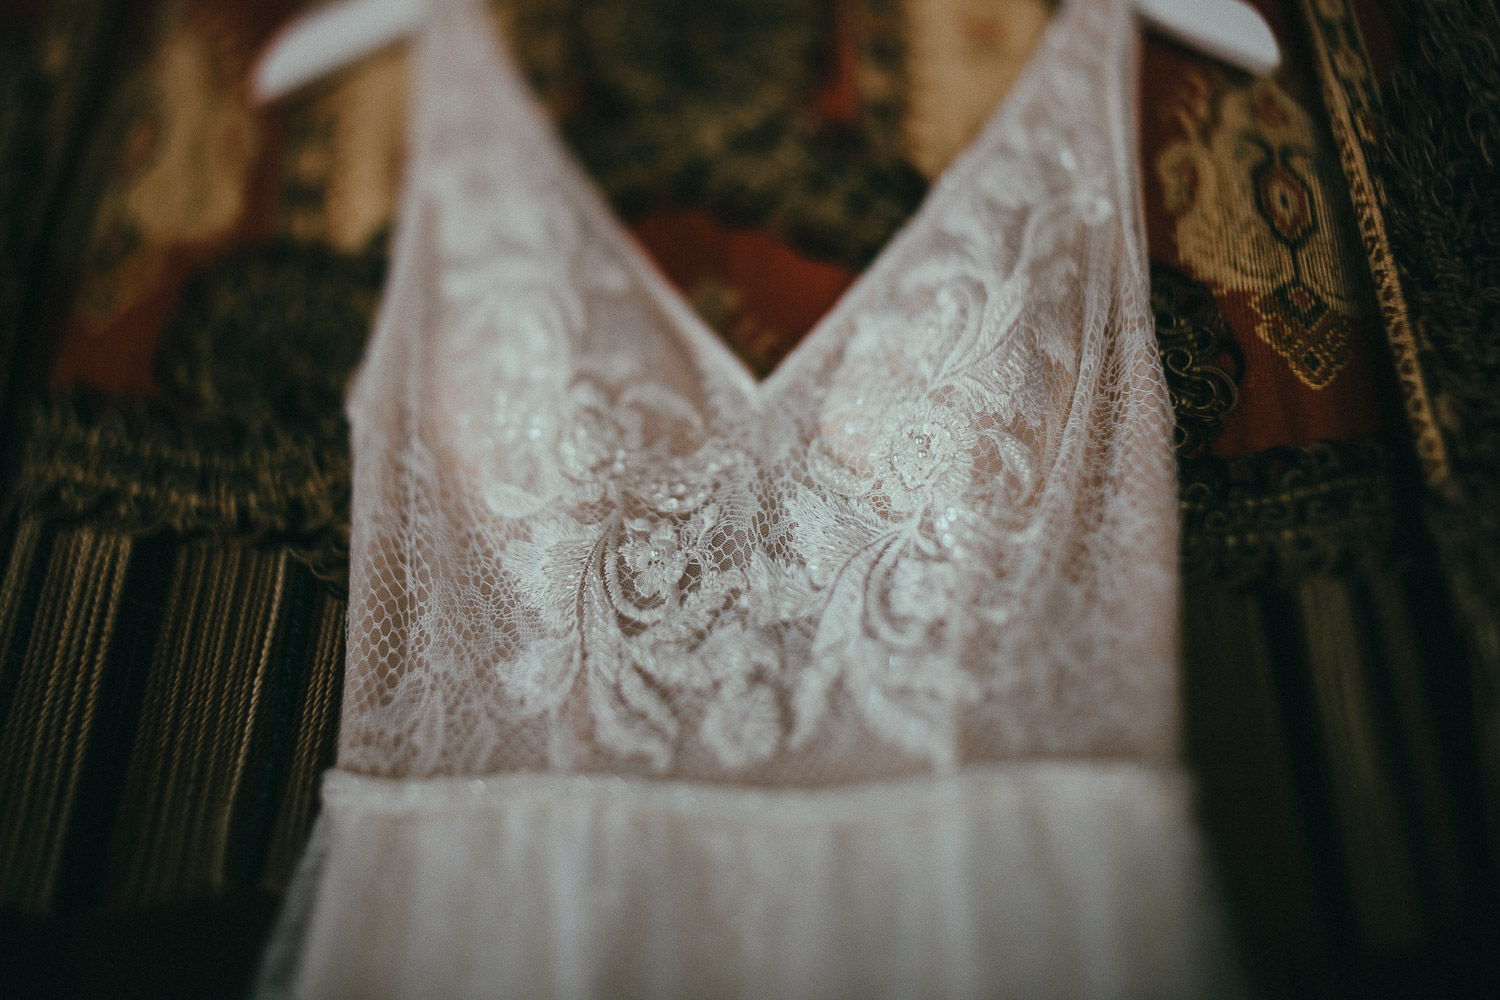 10-bride-dress-detail.jpg